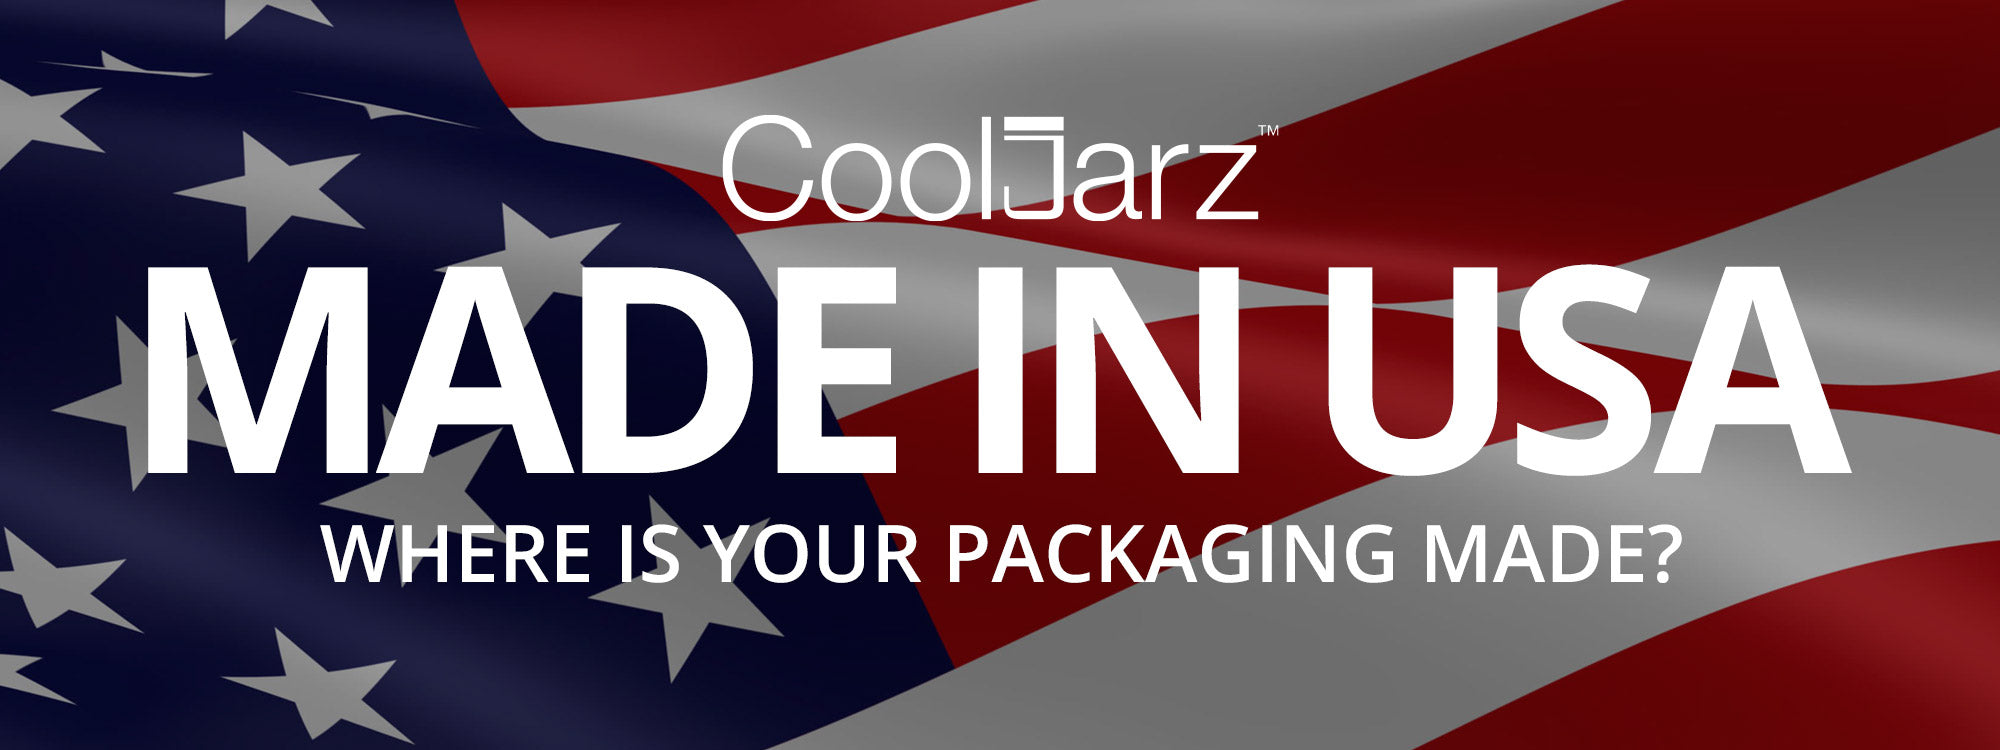 Cooljarz 100 Percent Made In USA